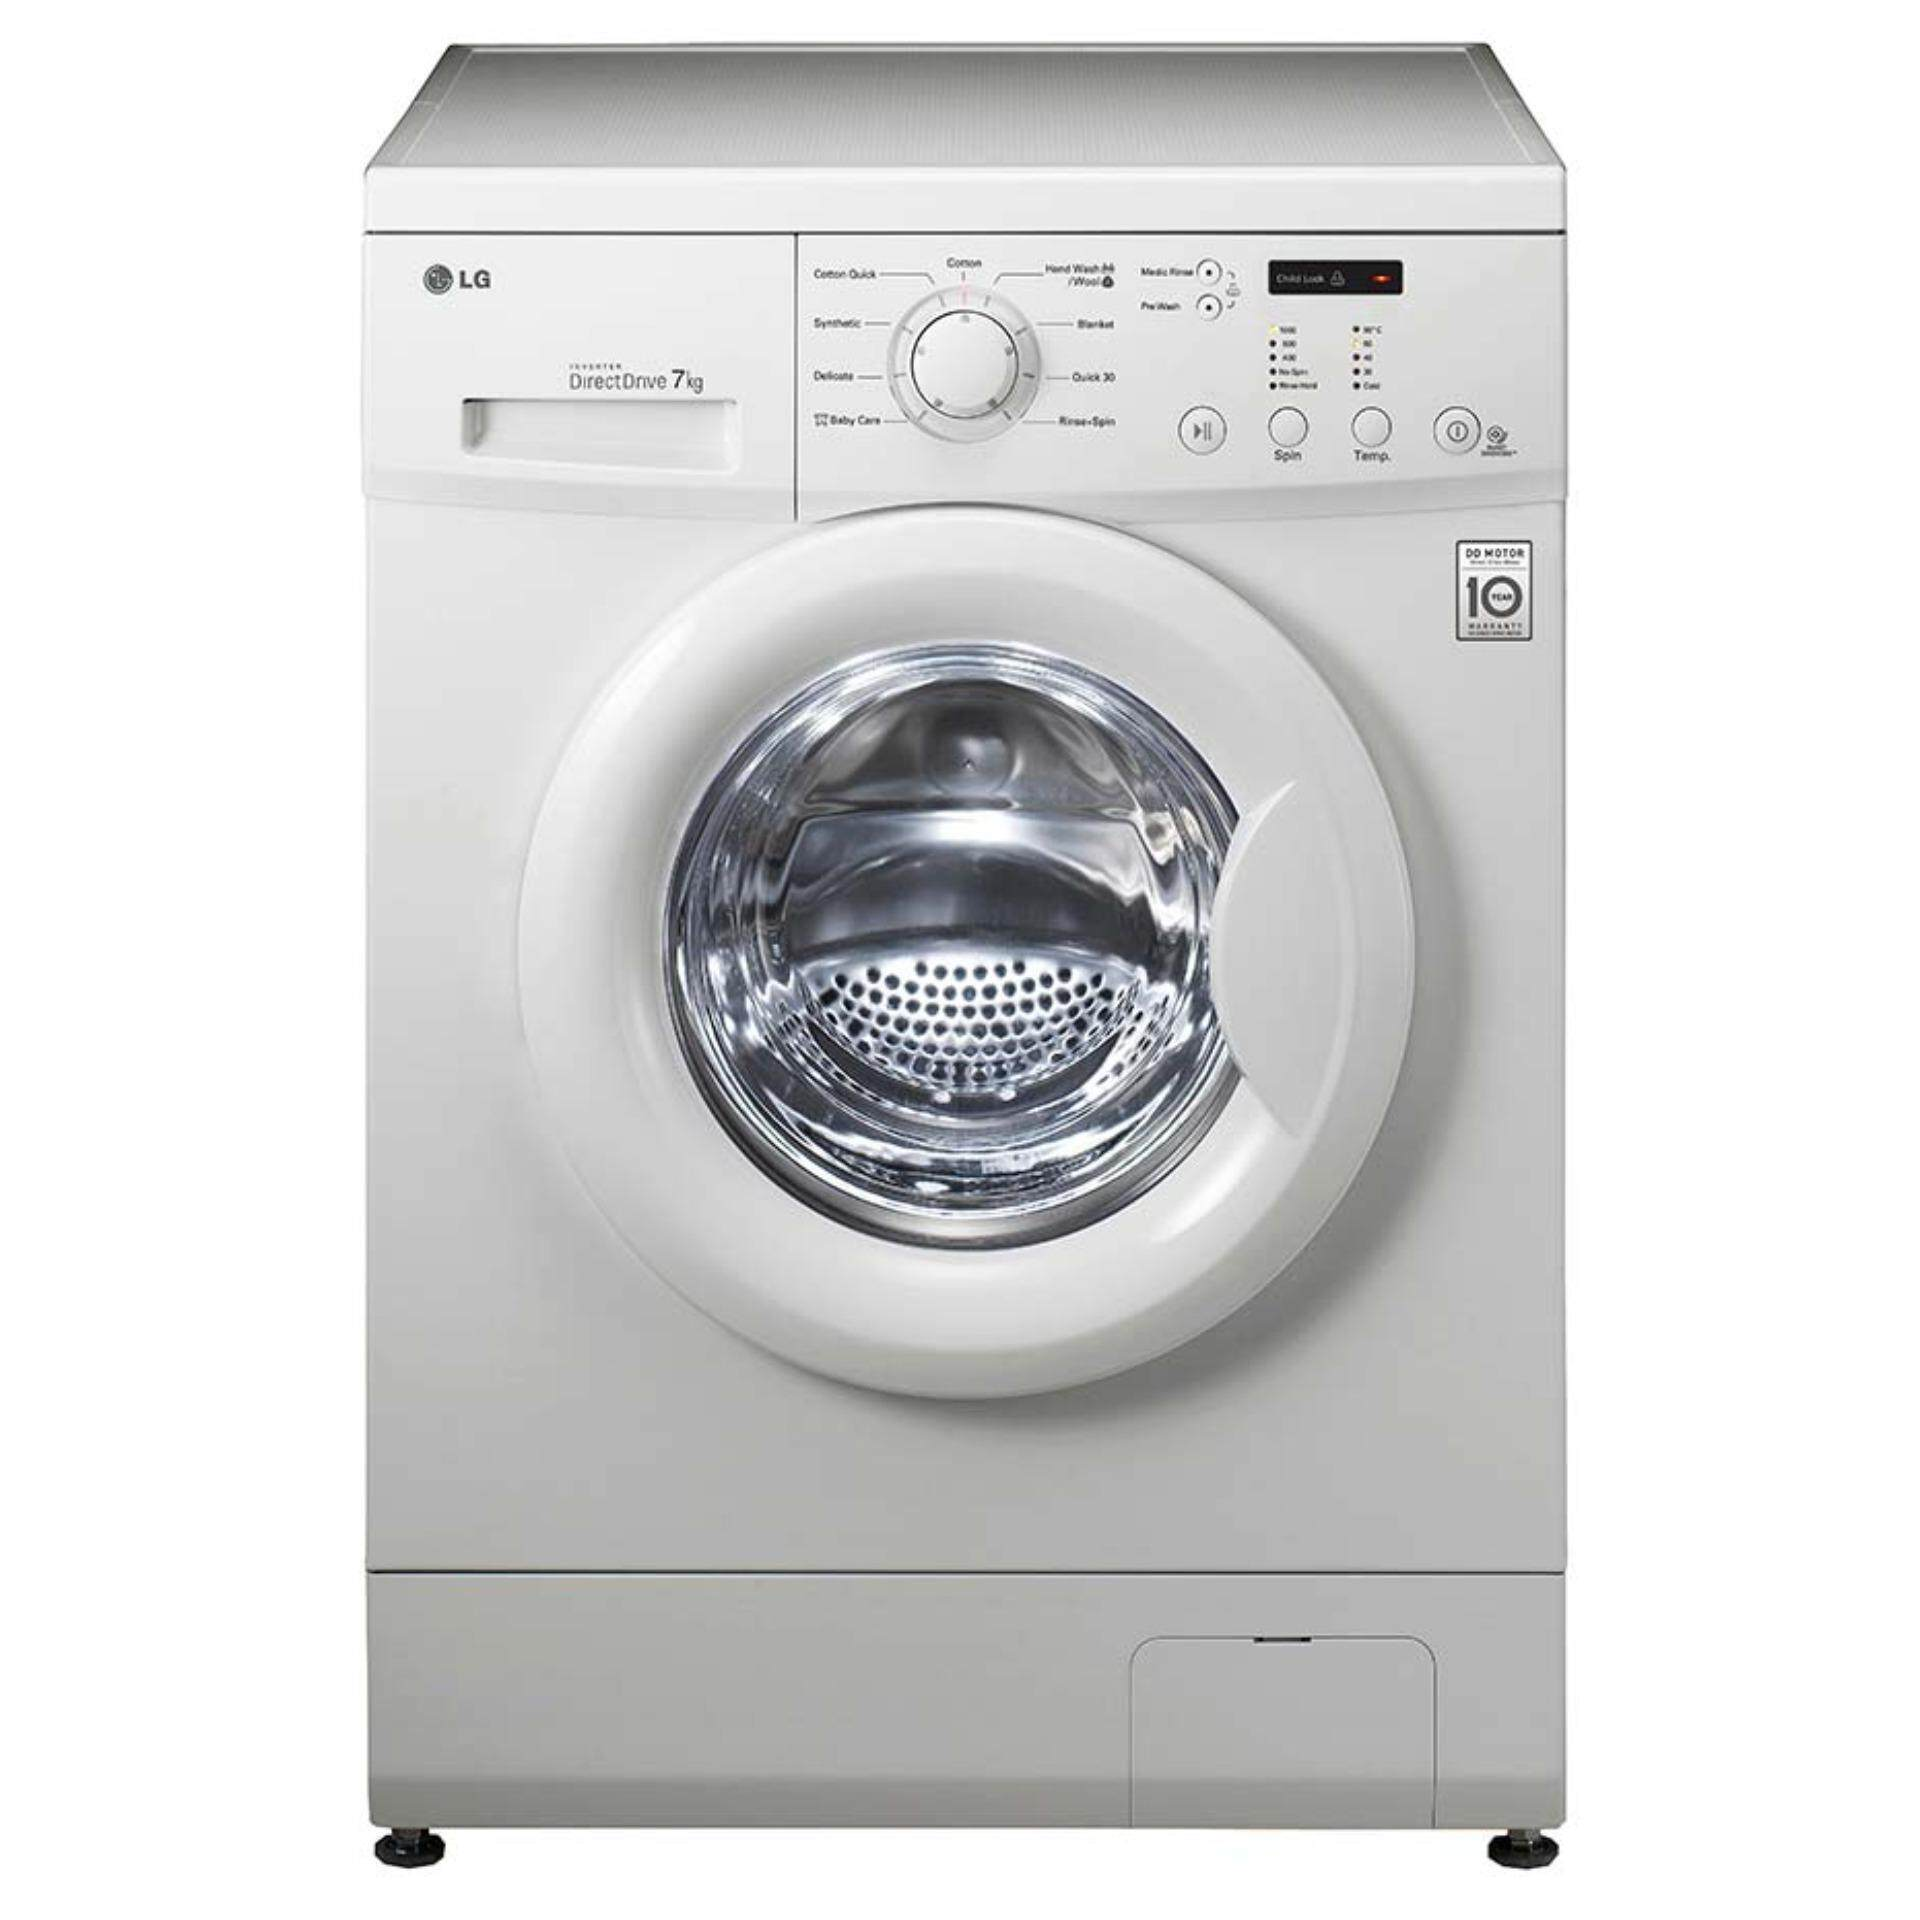 LG FRONT LOADING WASHING MACHINE WD-MD7000WM